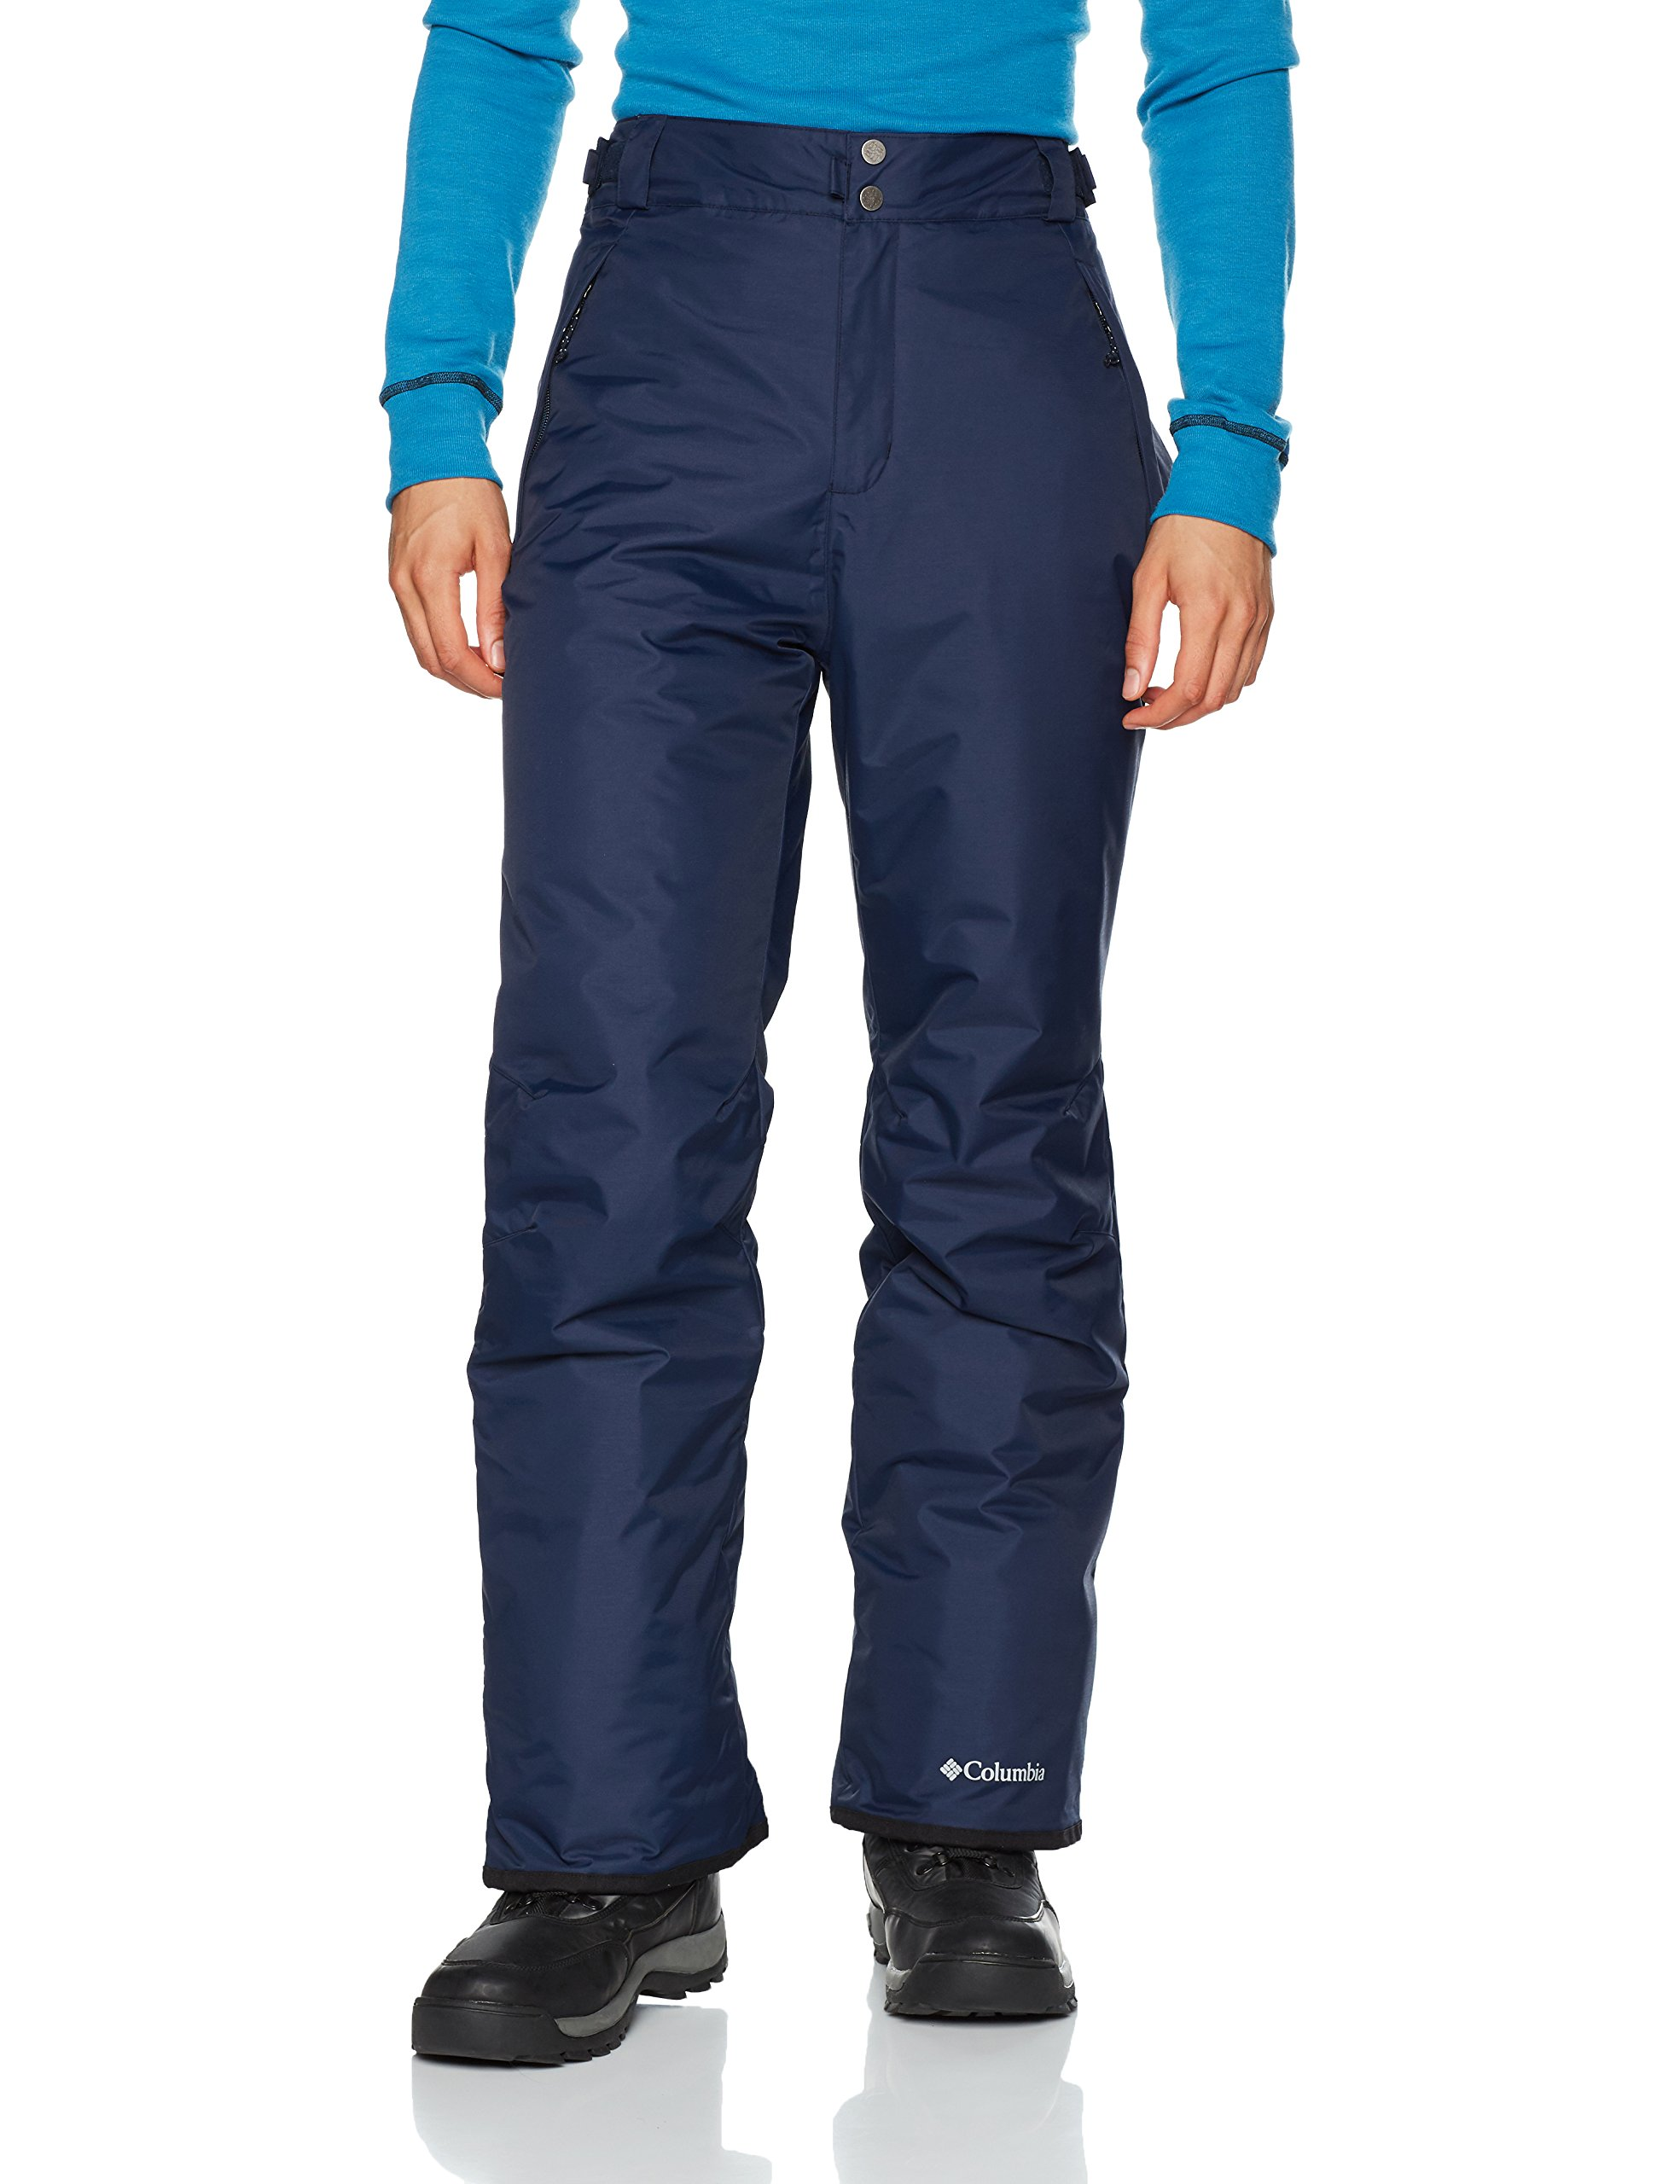 Columbia Sportswear Ride On Pant product image